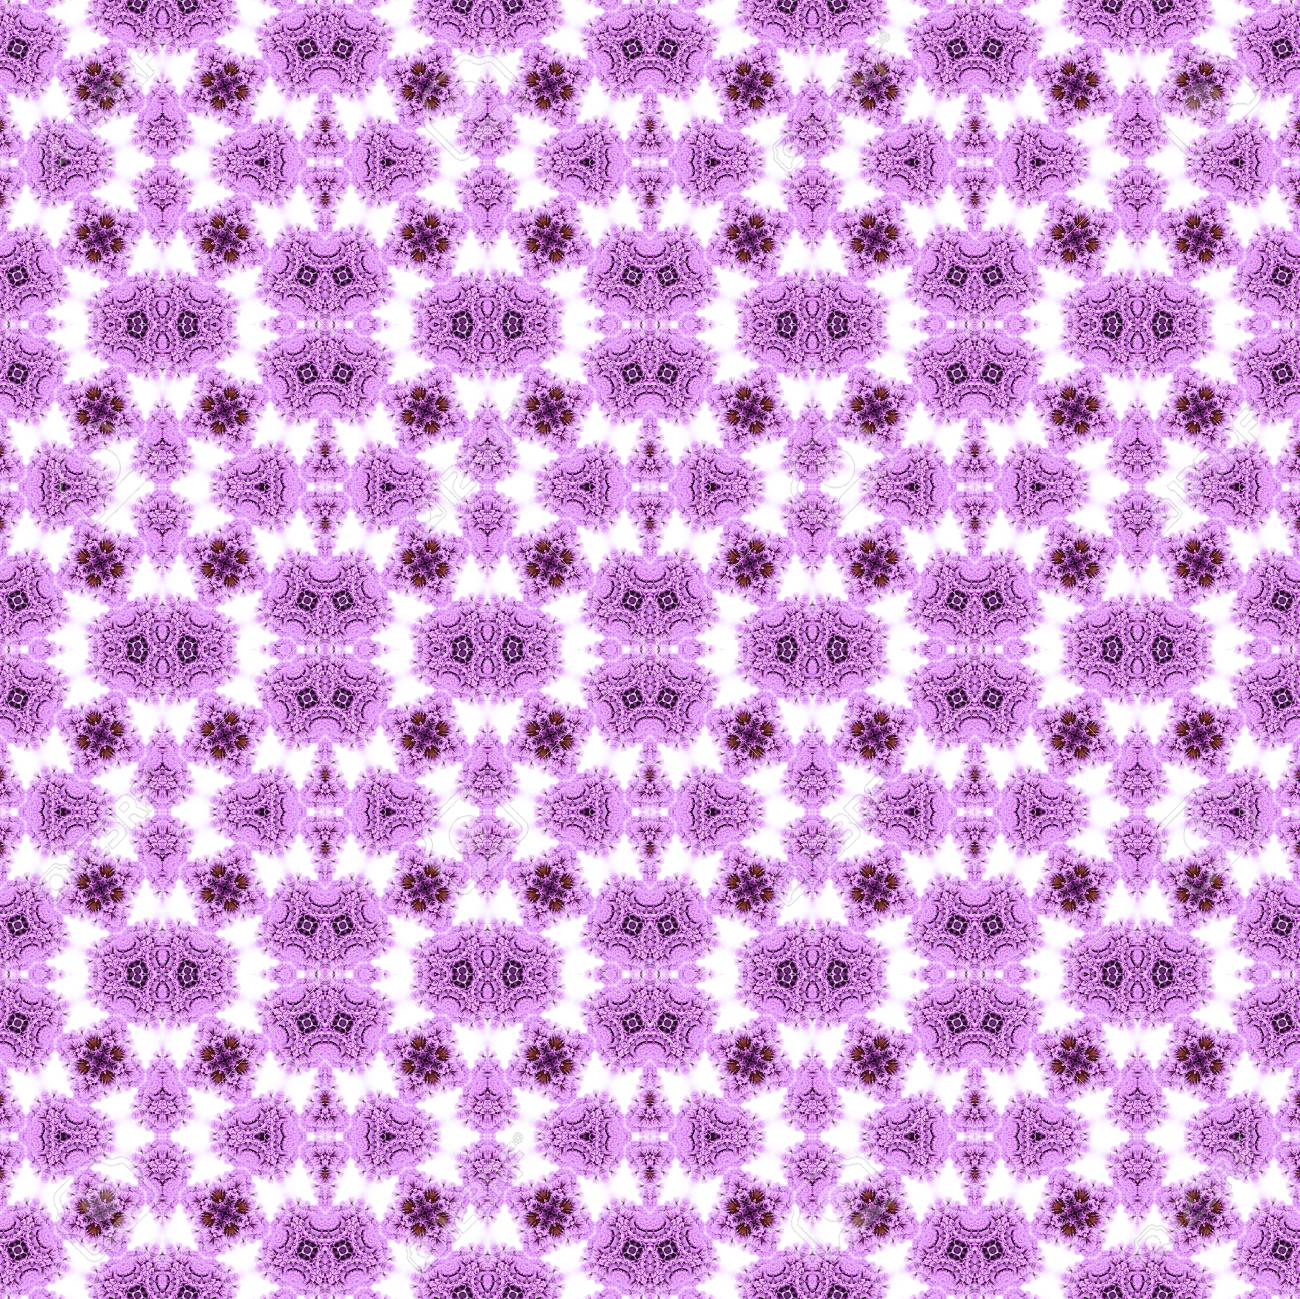 Abstract flowers seamless pattern background. Kaleidoscope from flowers. Hydraulic tile design. - 104075088